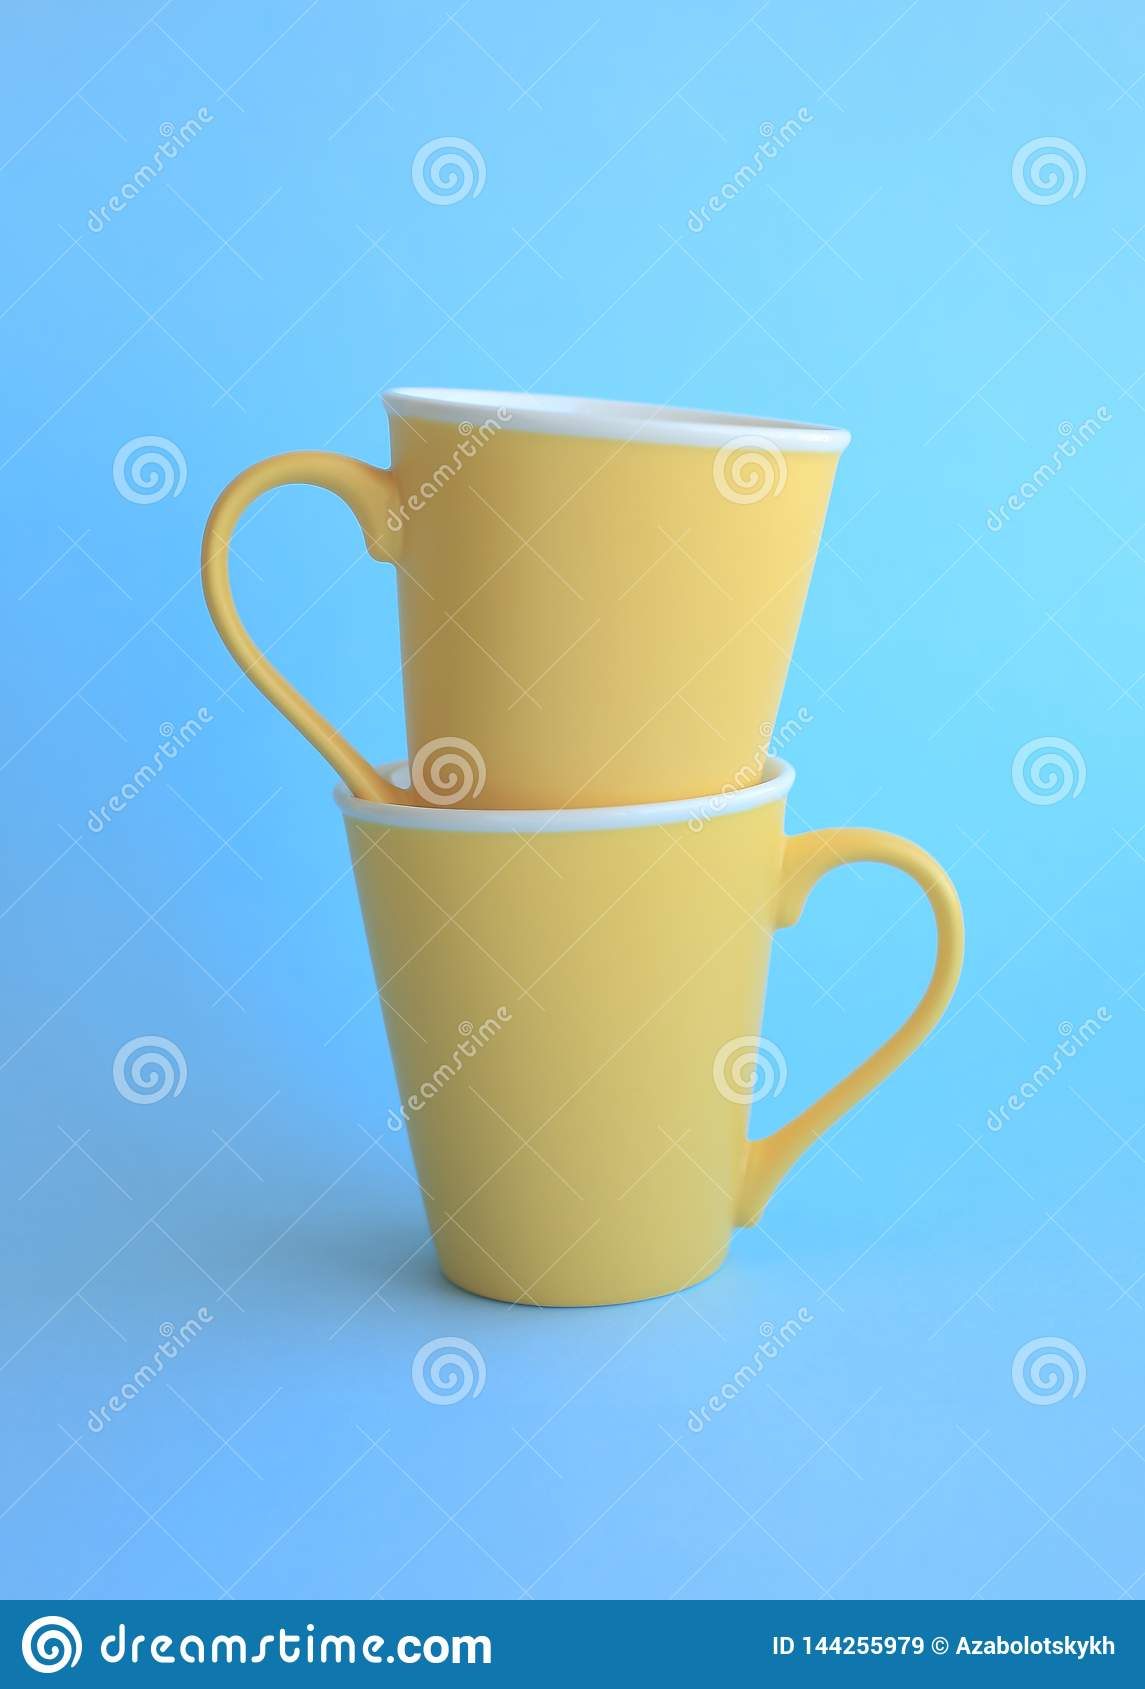 Two yellow cups on blue